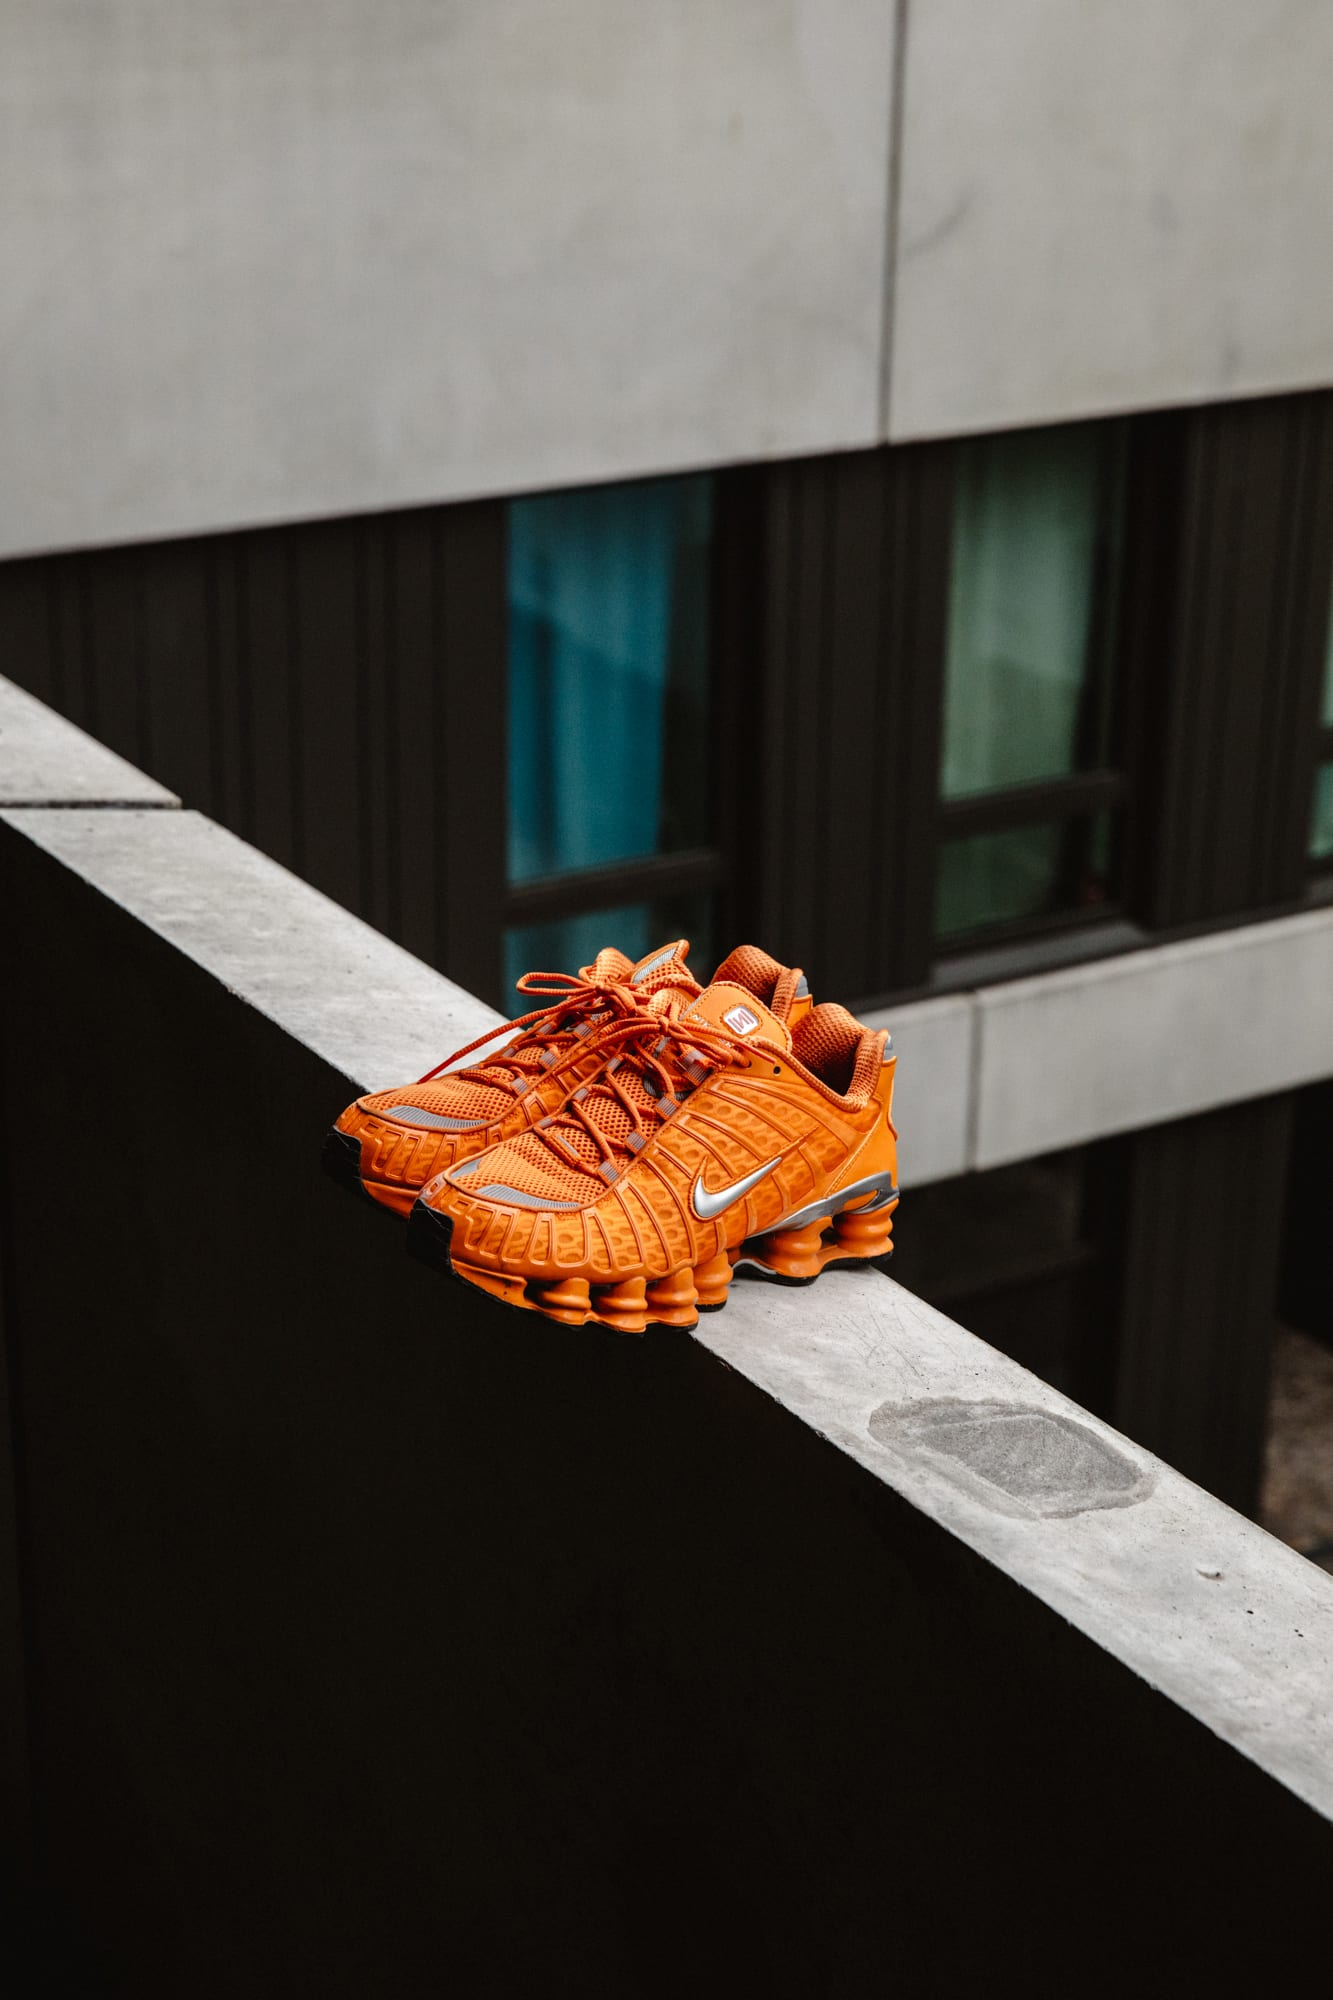 Flight Case Sneakers: Fabian Gorsler at Home in Berlin, image features Nike Shox TL